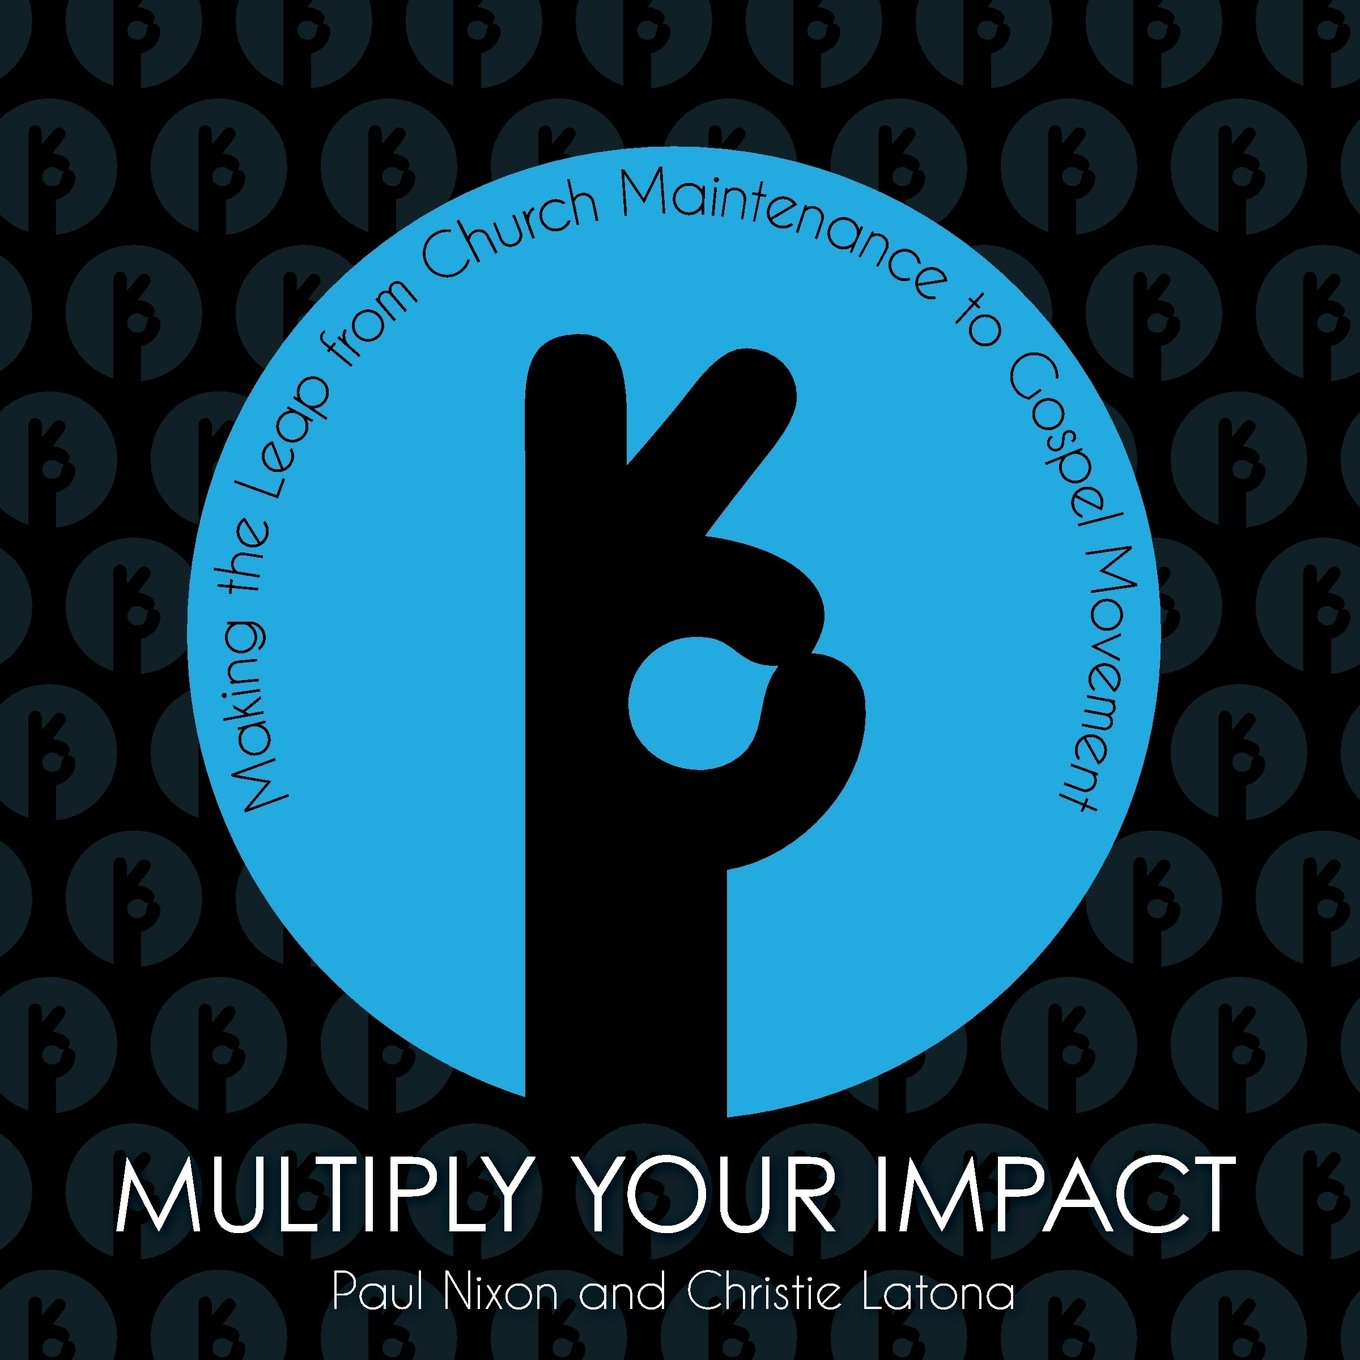 Multiply Your Impact: Making the Leap from Church Maintenance to Gospel Movement